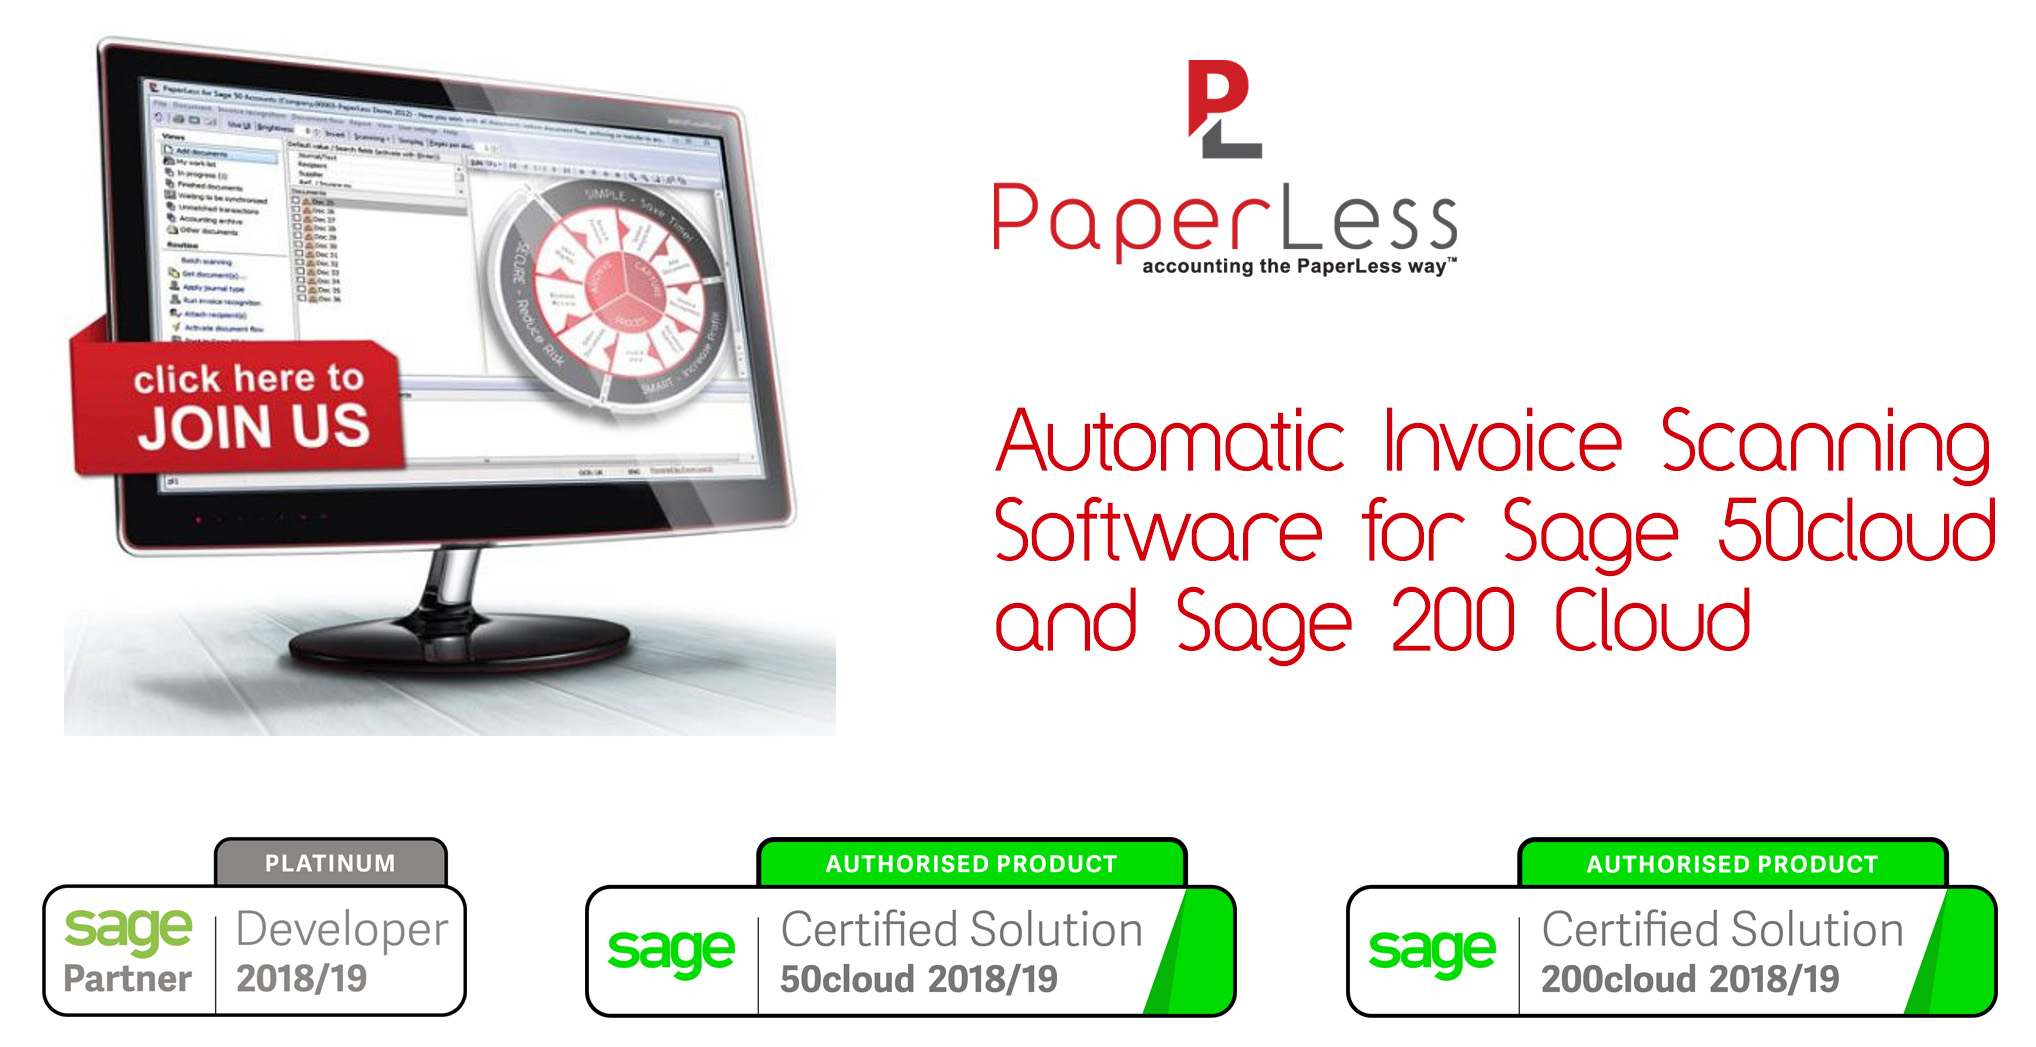 Click here to find out more about PaperLess OCR Software for Sage